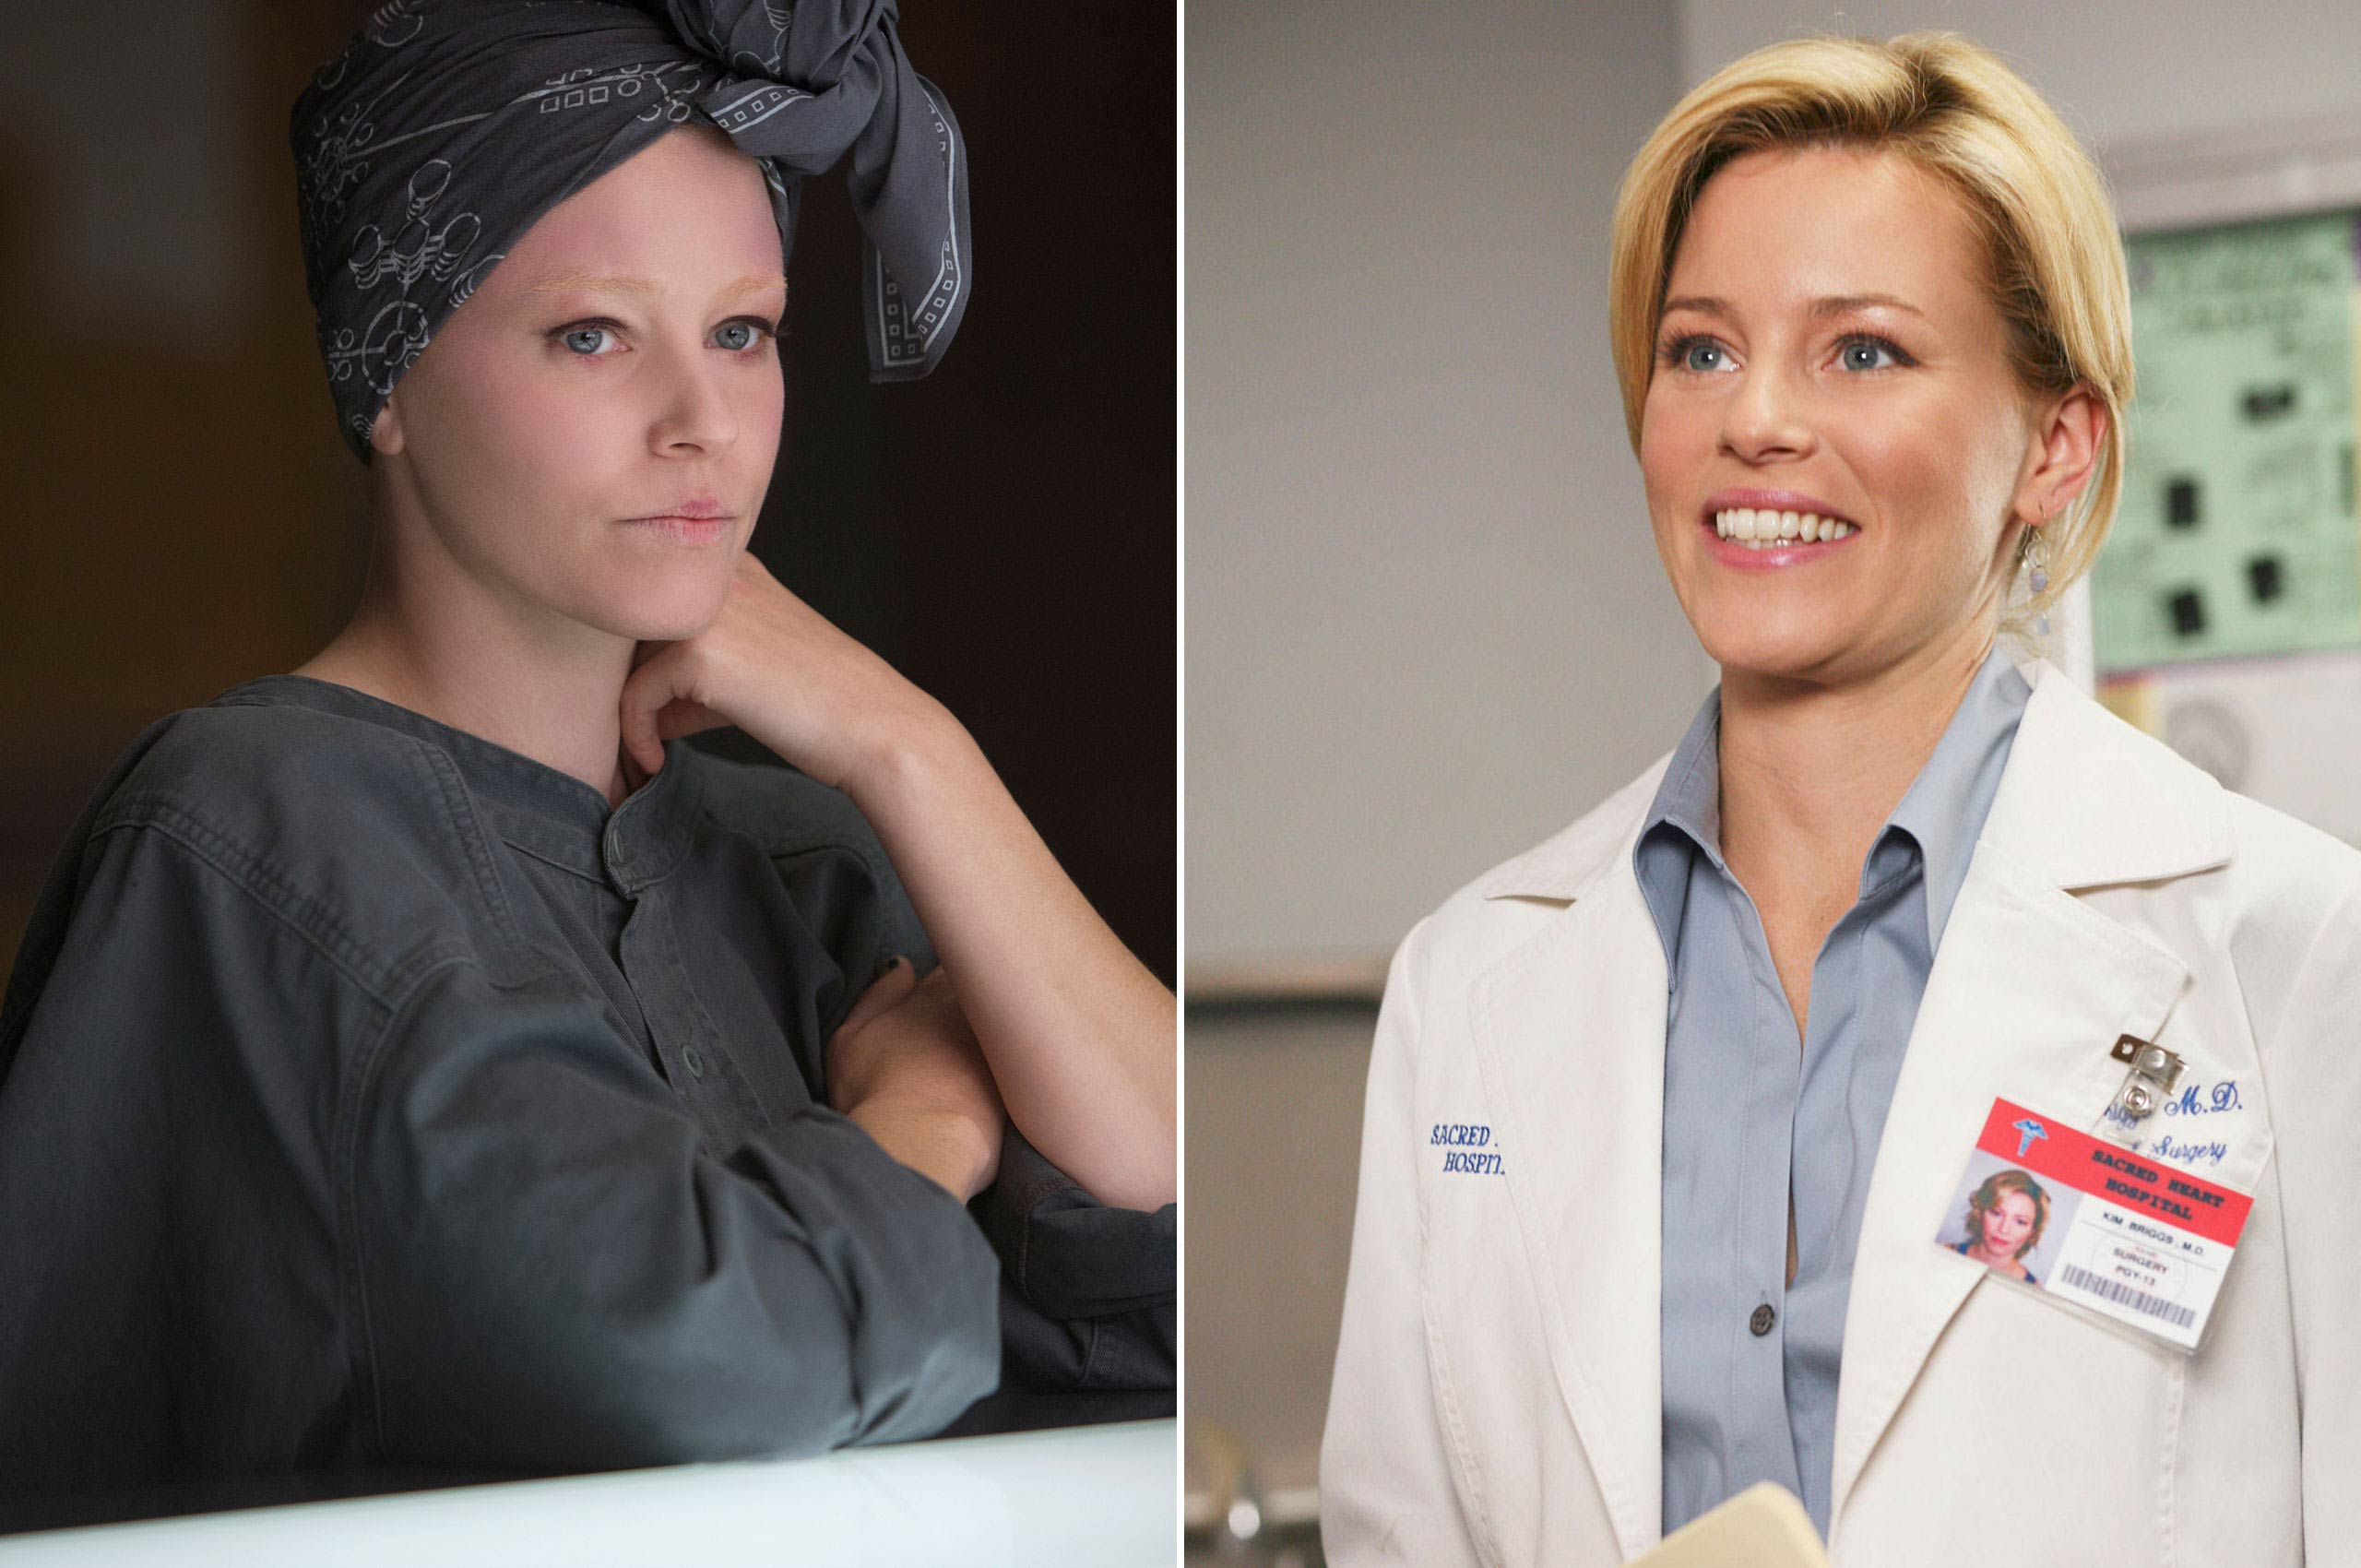 Before she was dressing up victors in the <i>Hunger Games</i> movies as Effie Trinket, Elizabeth Banks was dressed up in scrubs as Dr. Kim Briggs in the long-running television show <i>Scrubs</i>.